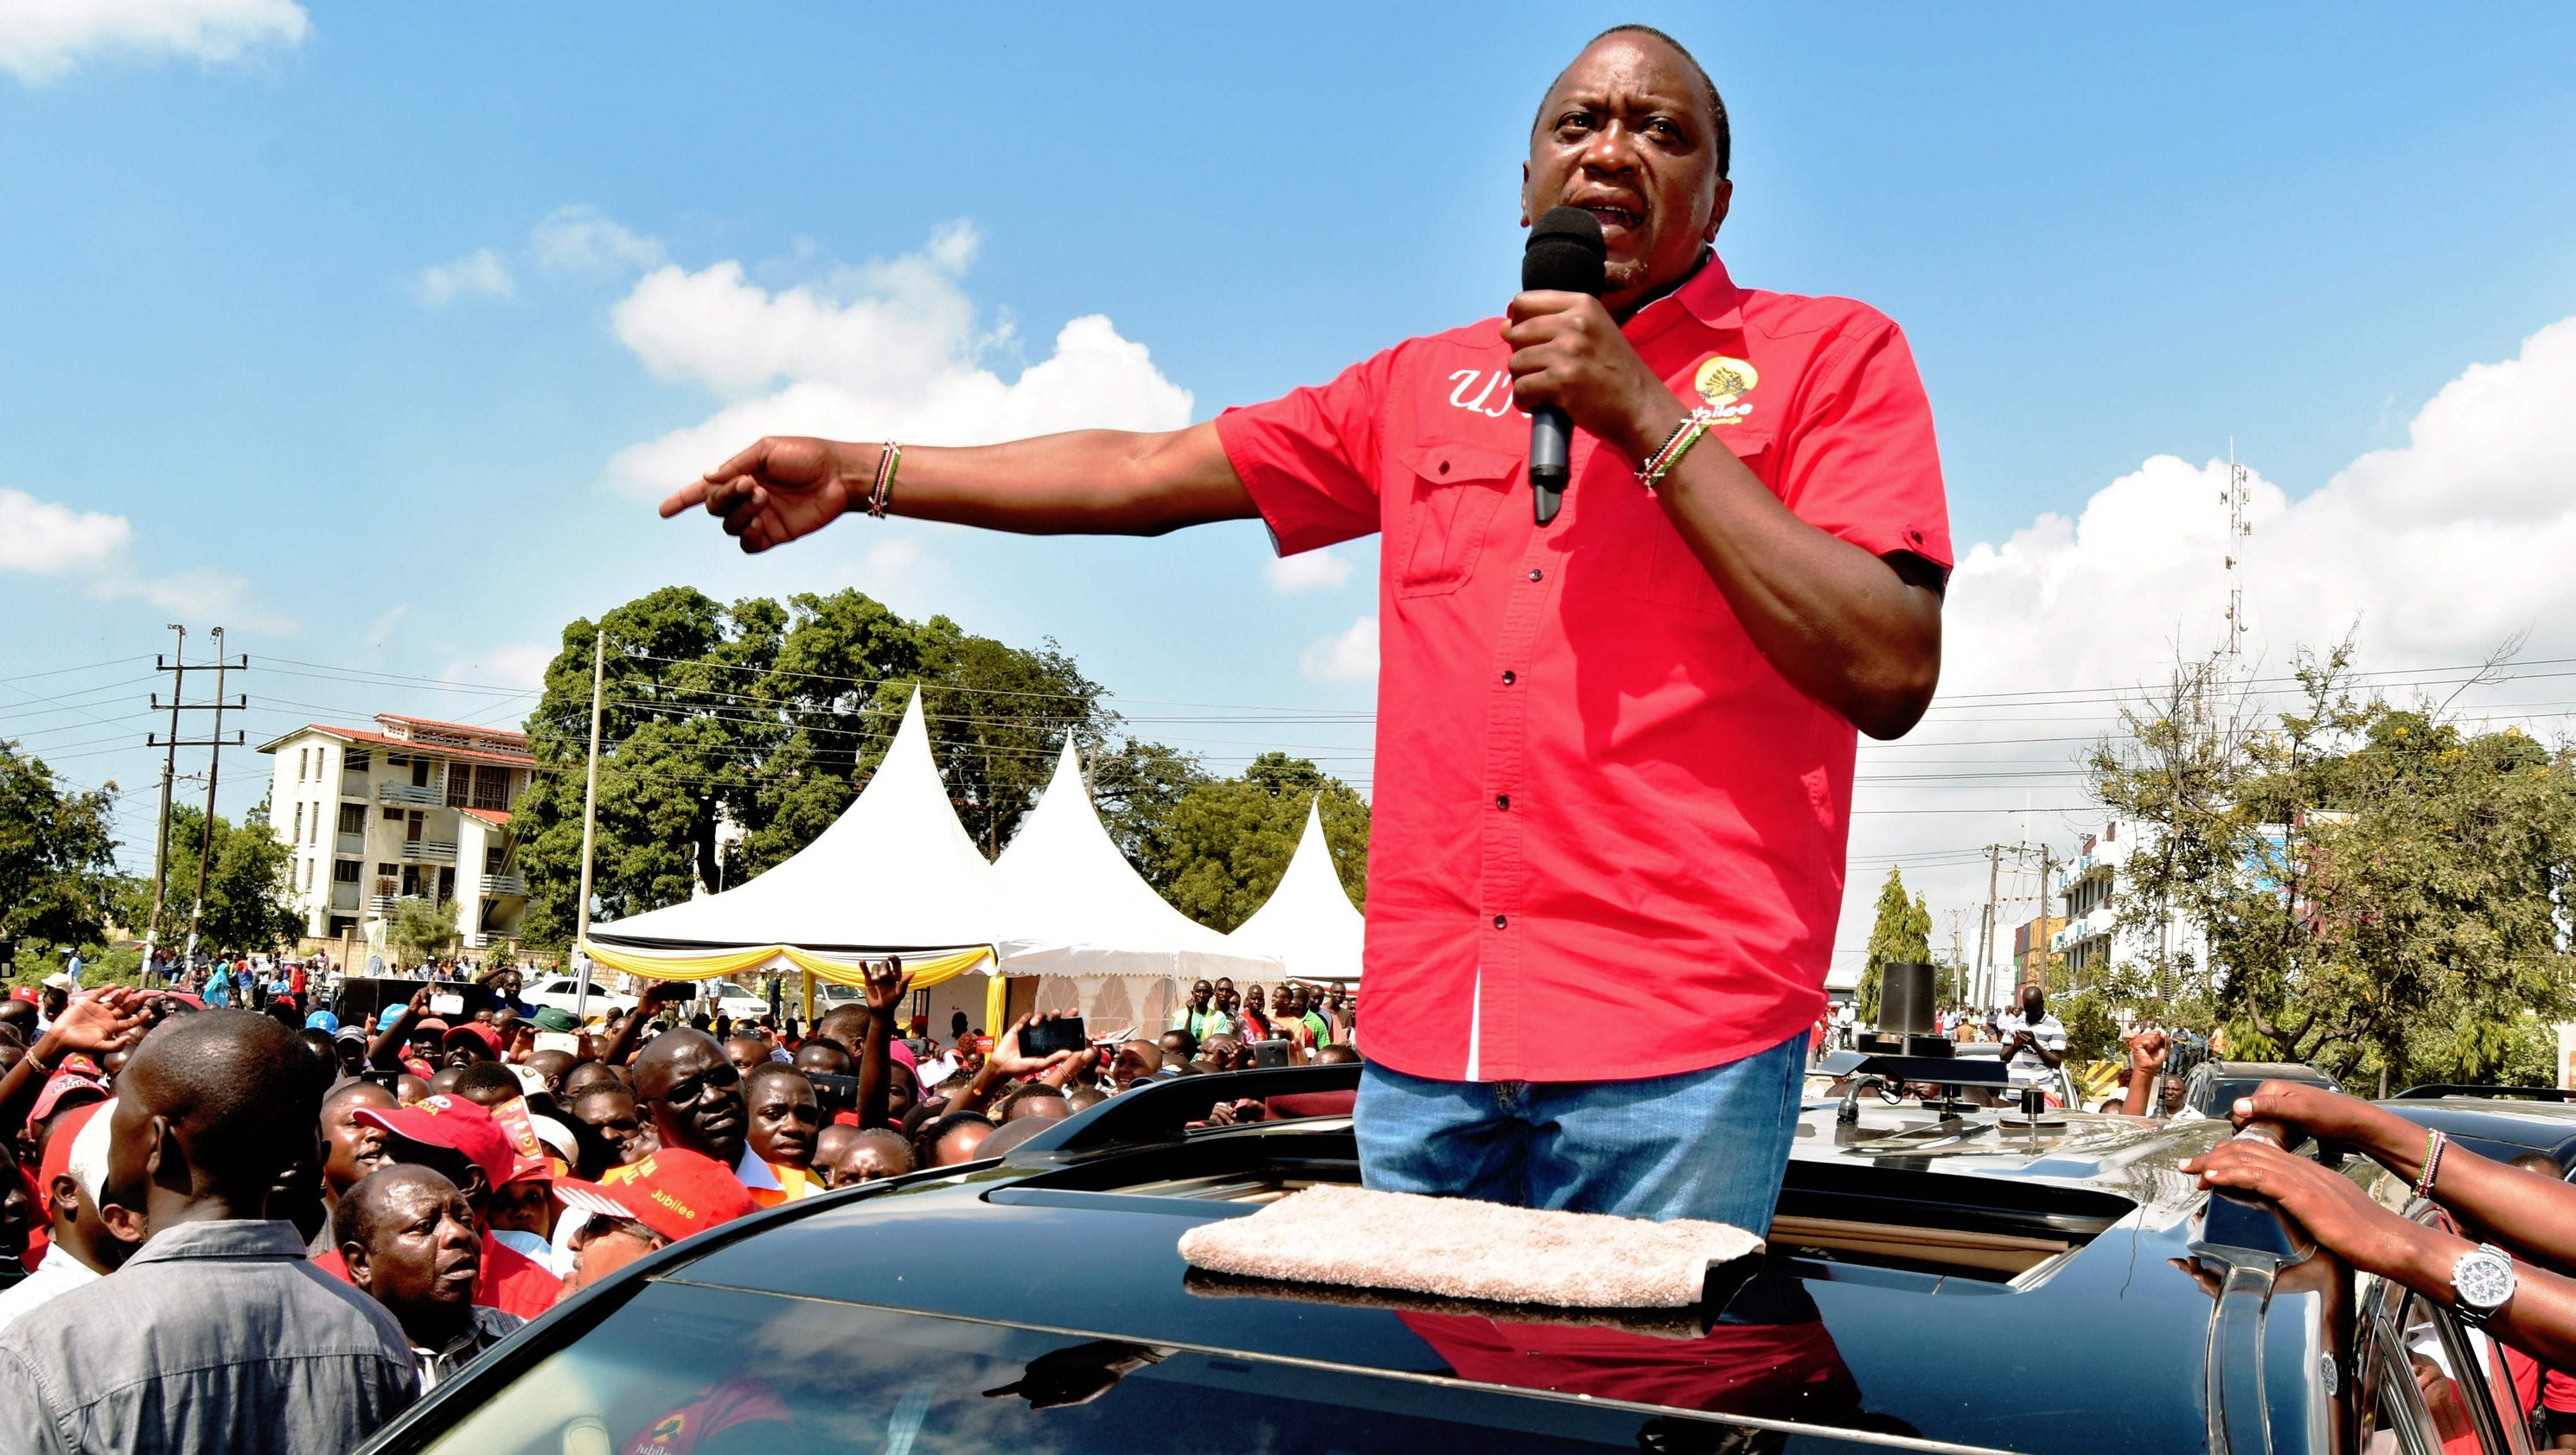 Kenya's hotly contested presidential election marred by violence — once again